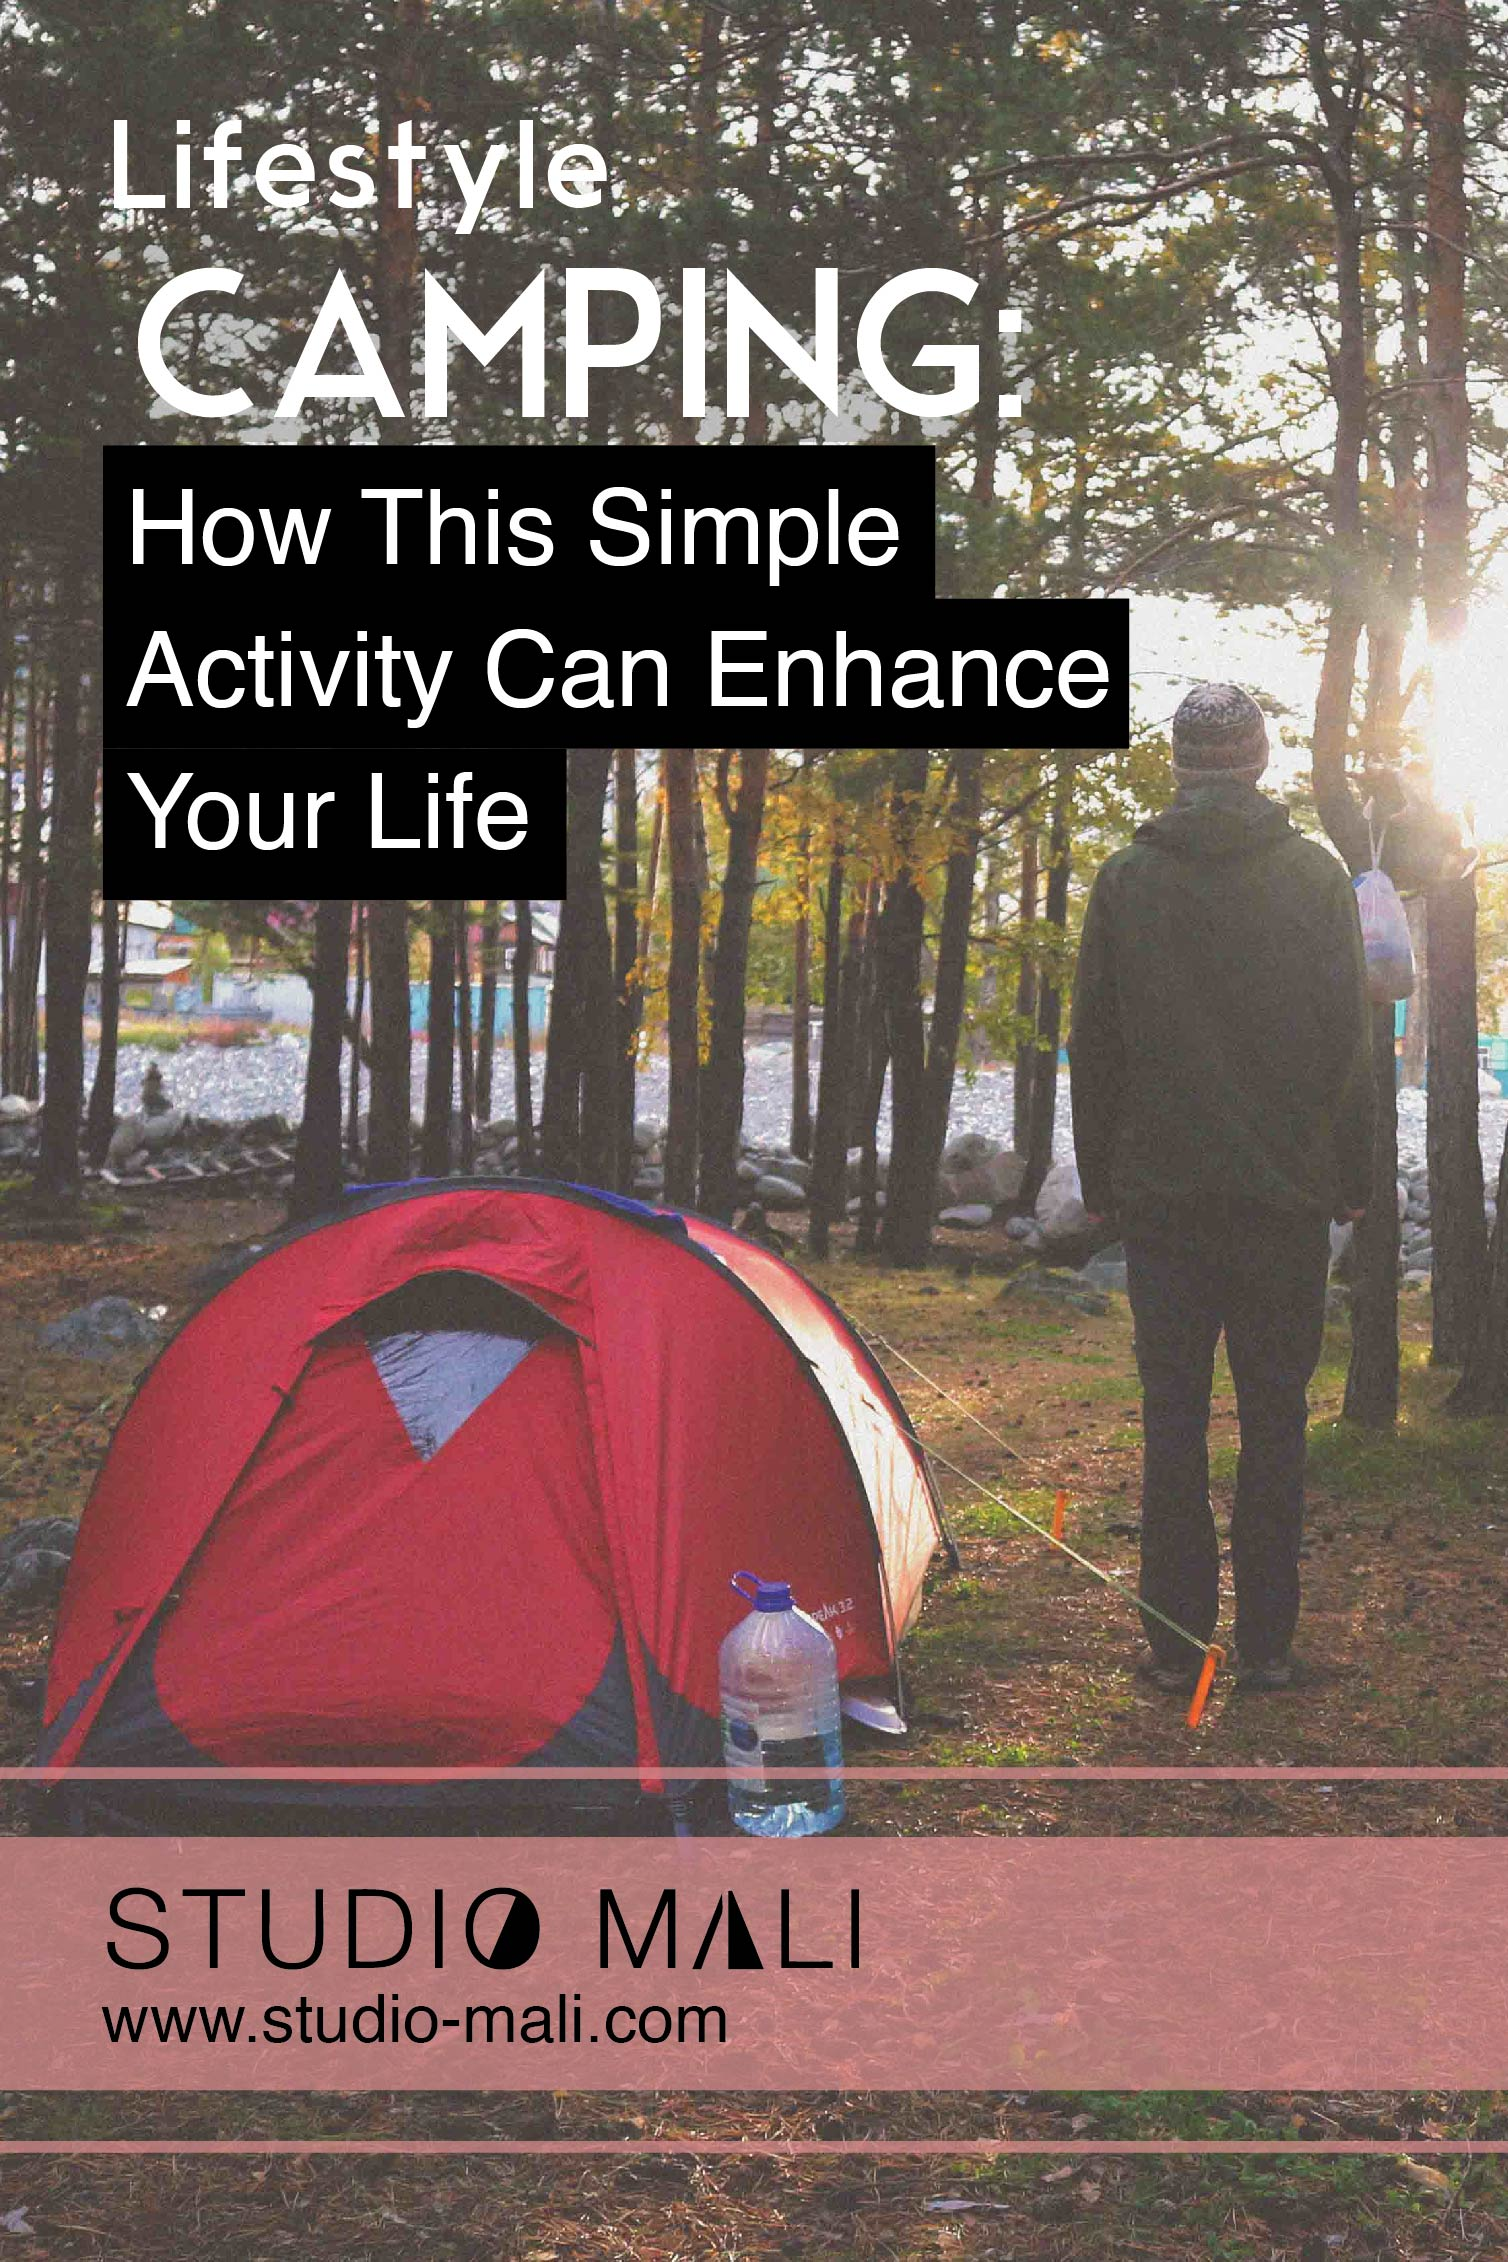 Camping: How This Simple Activity Can Enhance Your Life